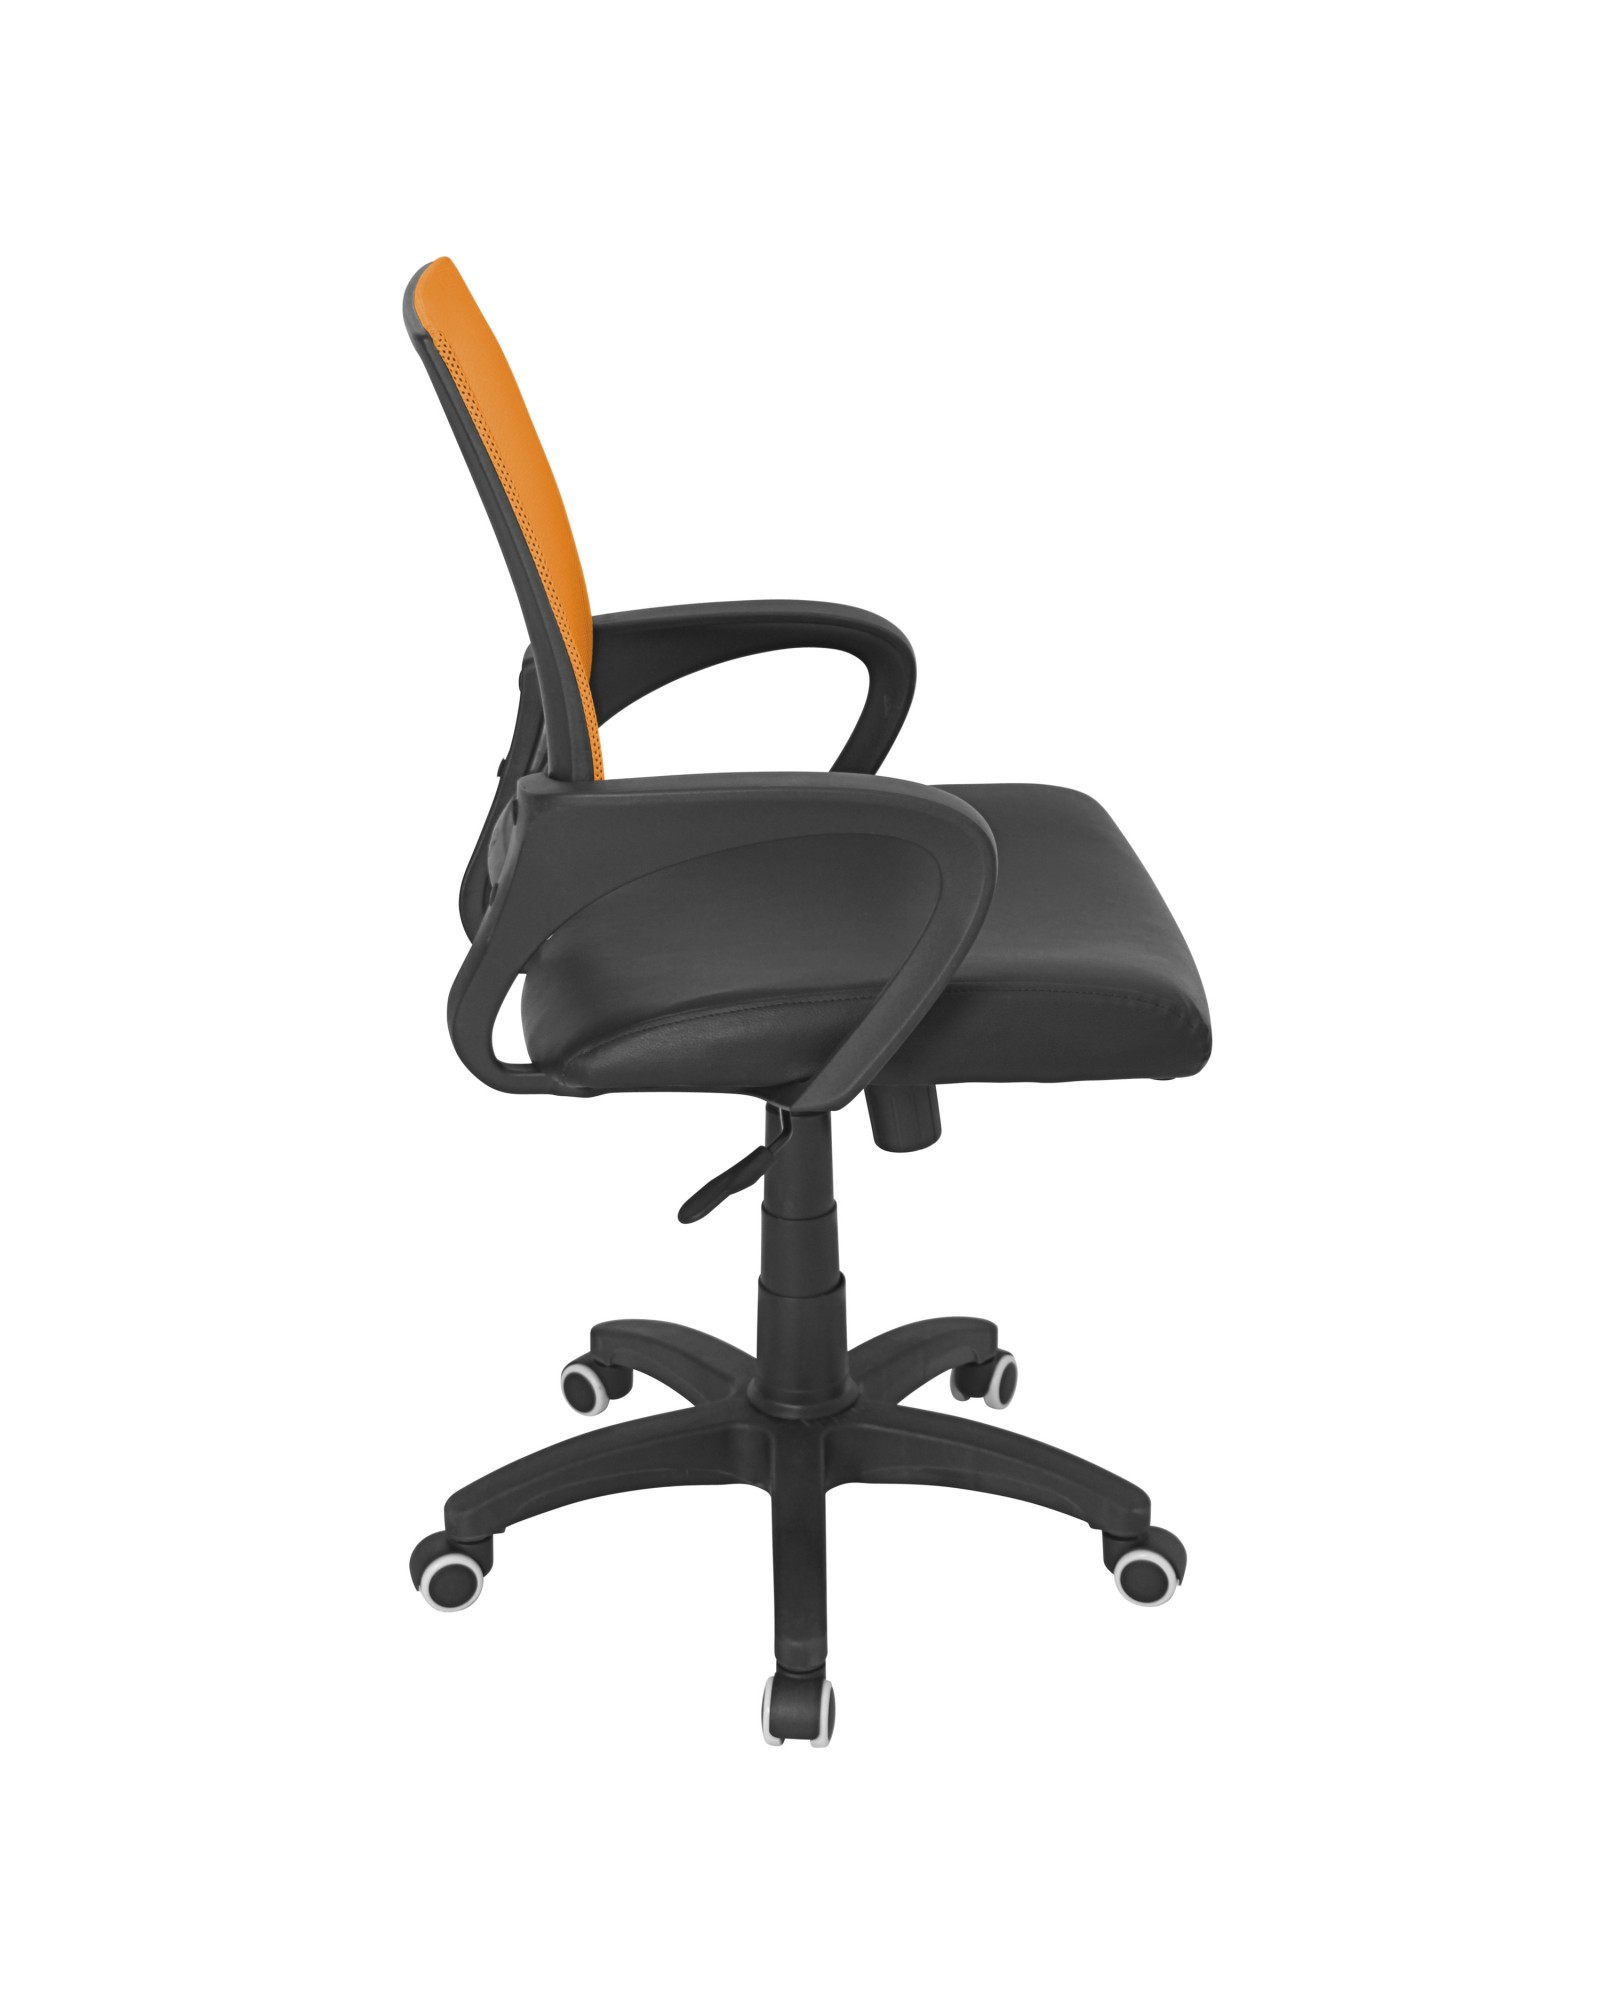 Officer Modern Adjustable Office Chair with Swivel in Orange